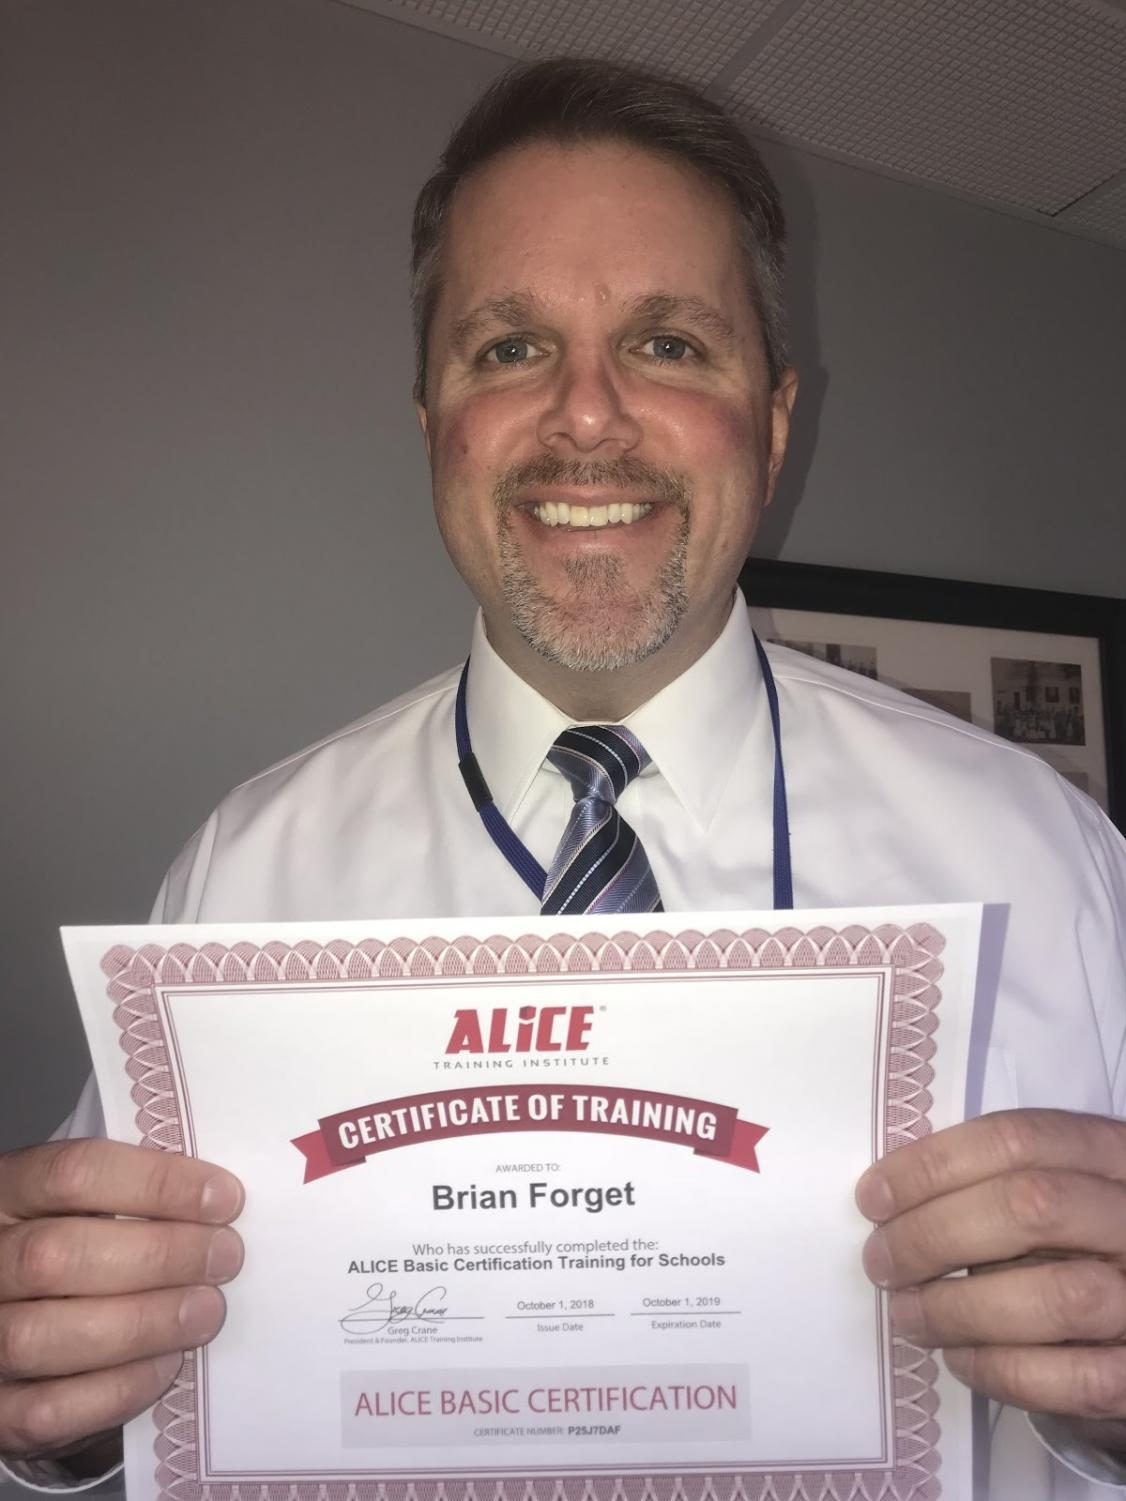 Brian Forget, the Superintant of Triton Regional School District holding his ALICE training certificate.